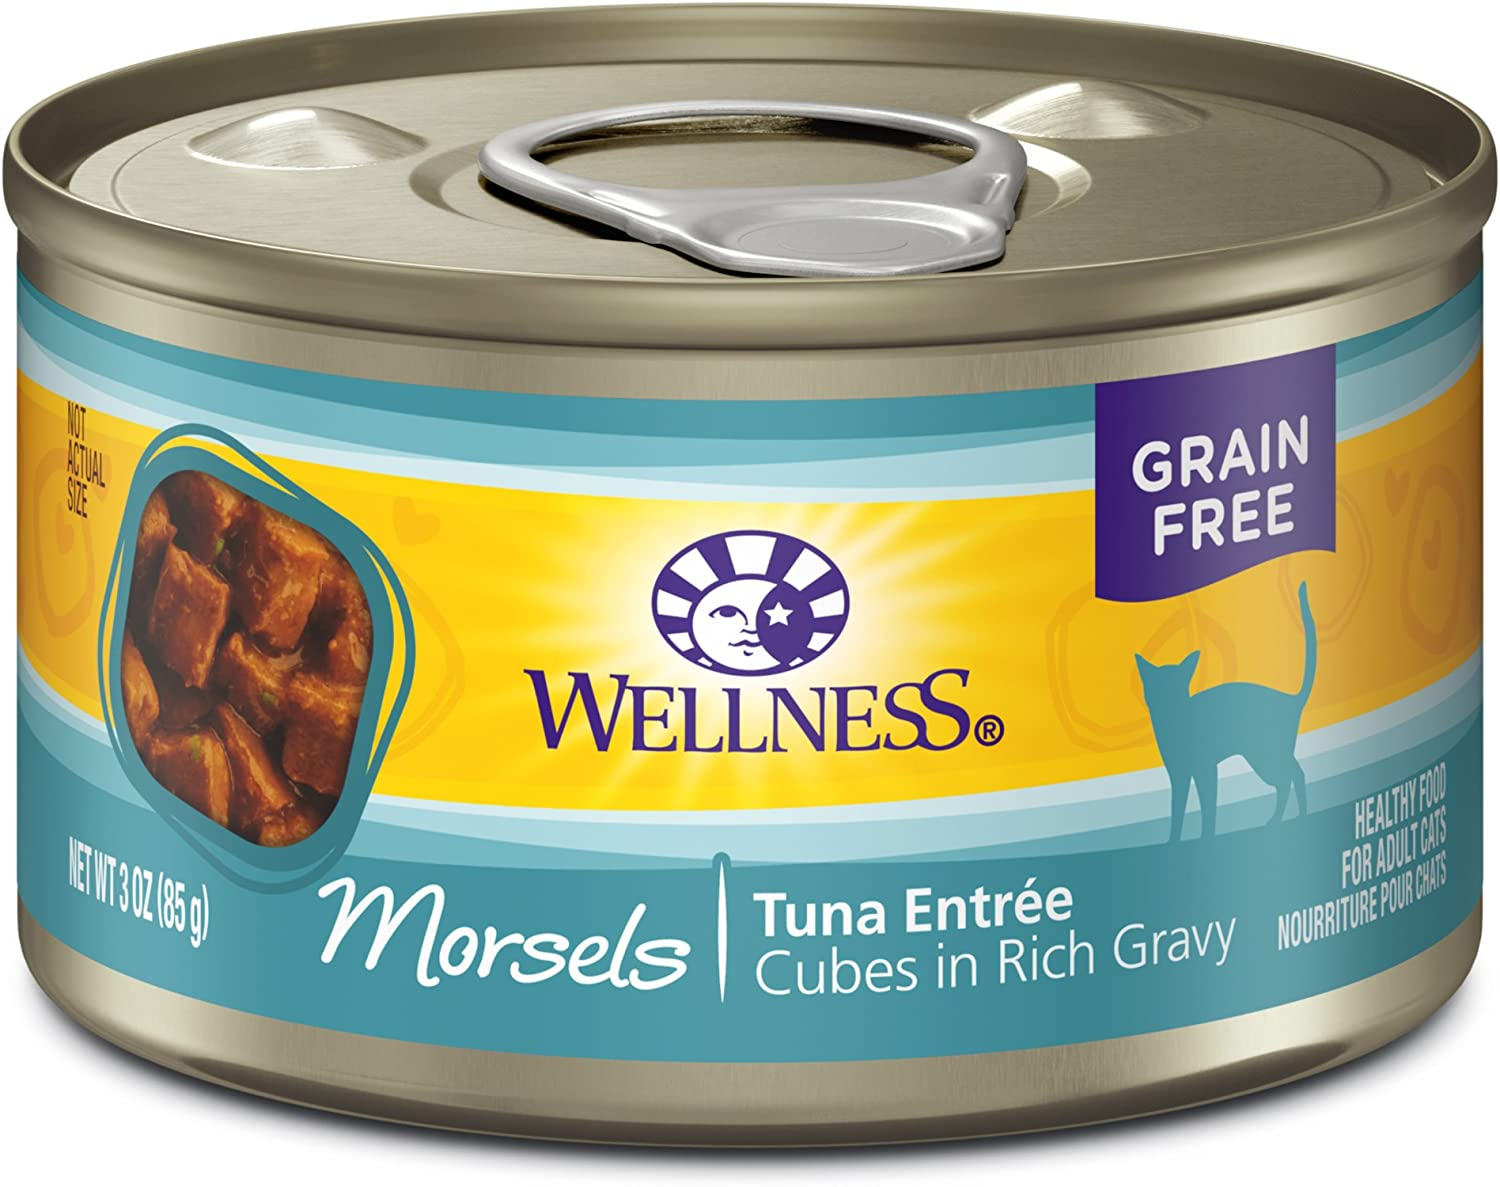 Wellness Complete Health Natural Grain Free Wet Canned Cat Food, Cubed Tuna Entree, 3-Ounce Can (Pack of 24)